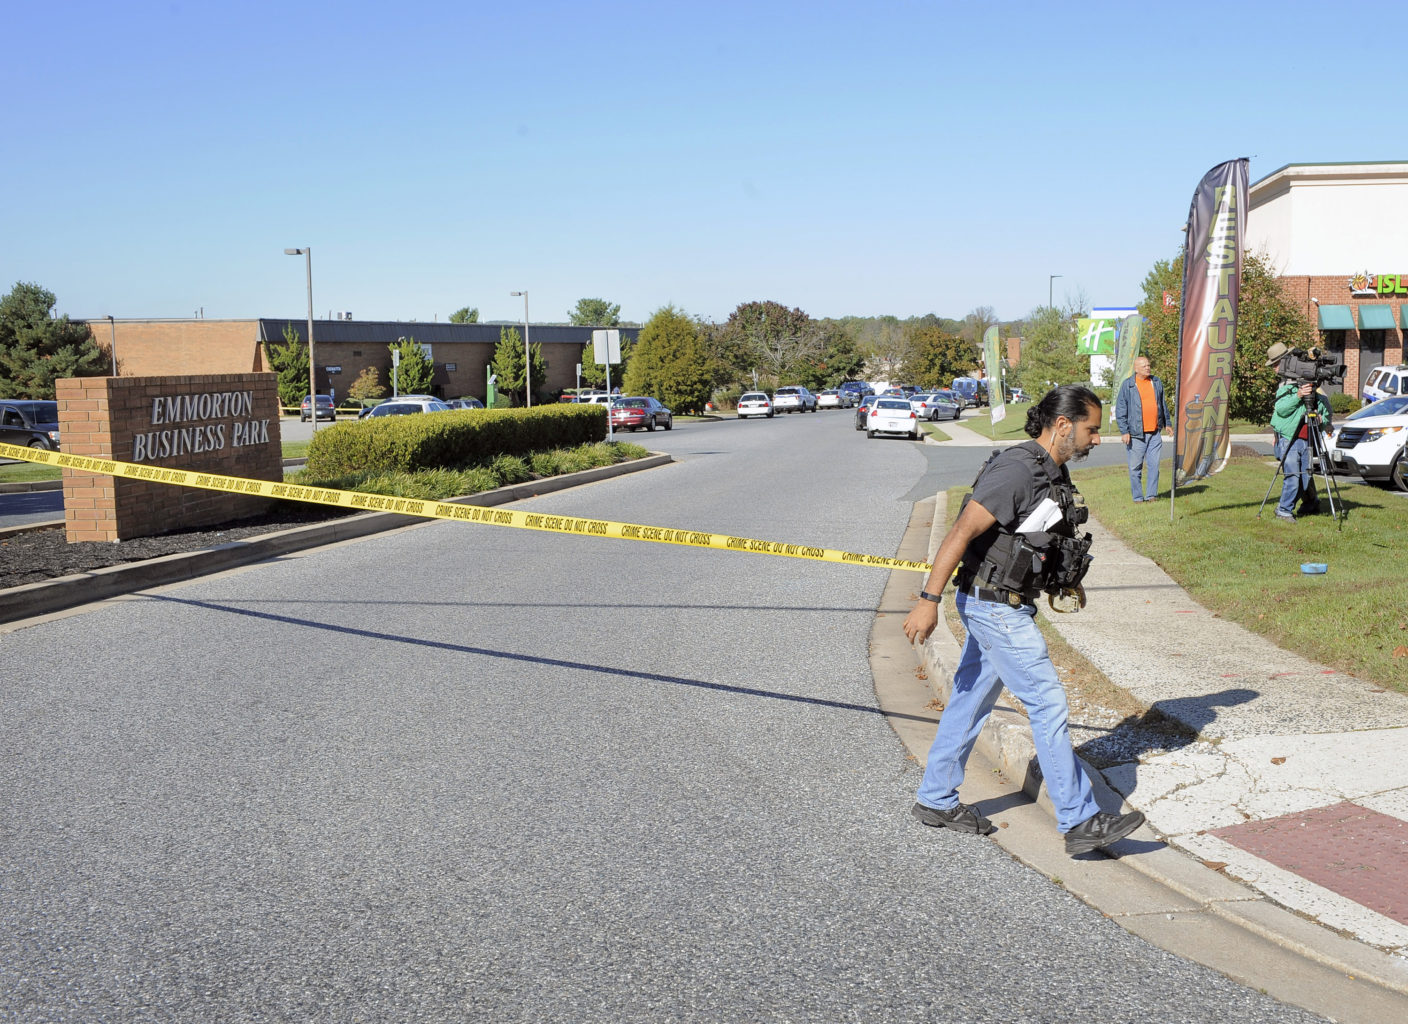 A police officer puts up crime scene tape at the scene of shooting at Emmorton Business Park, the scene of a workplace shooting where five people were shot and three are confirmed dead Wednesday, Oct. 18, 2017 in Edgewood, Md. The shooting was at the Advanced Granite Solutions inside Emmorton Business Park. (Kenneth K. Lam/Baltimore Sun/TNS)